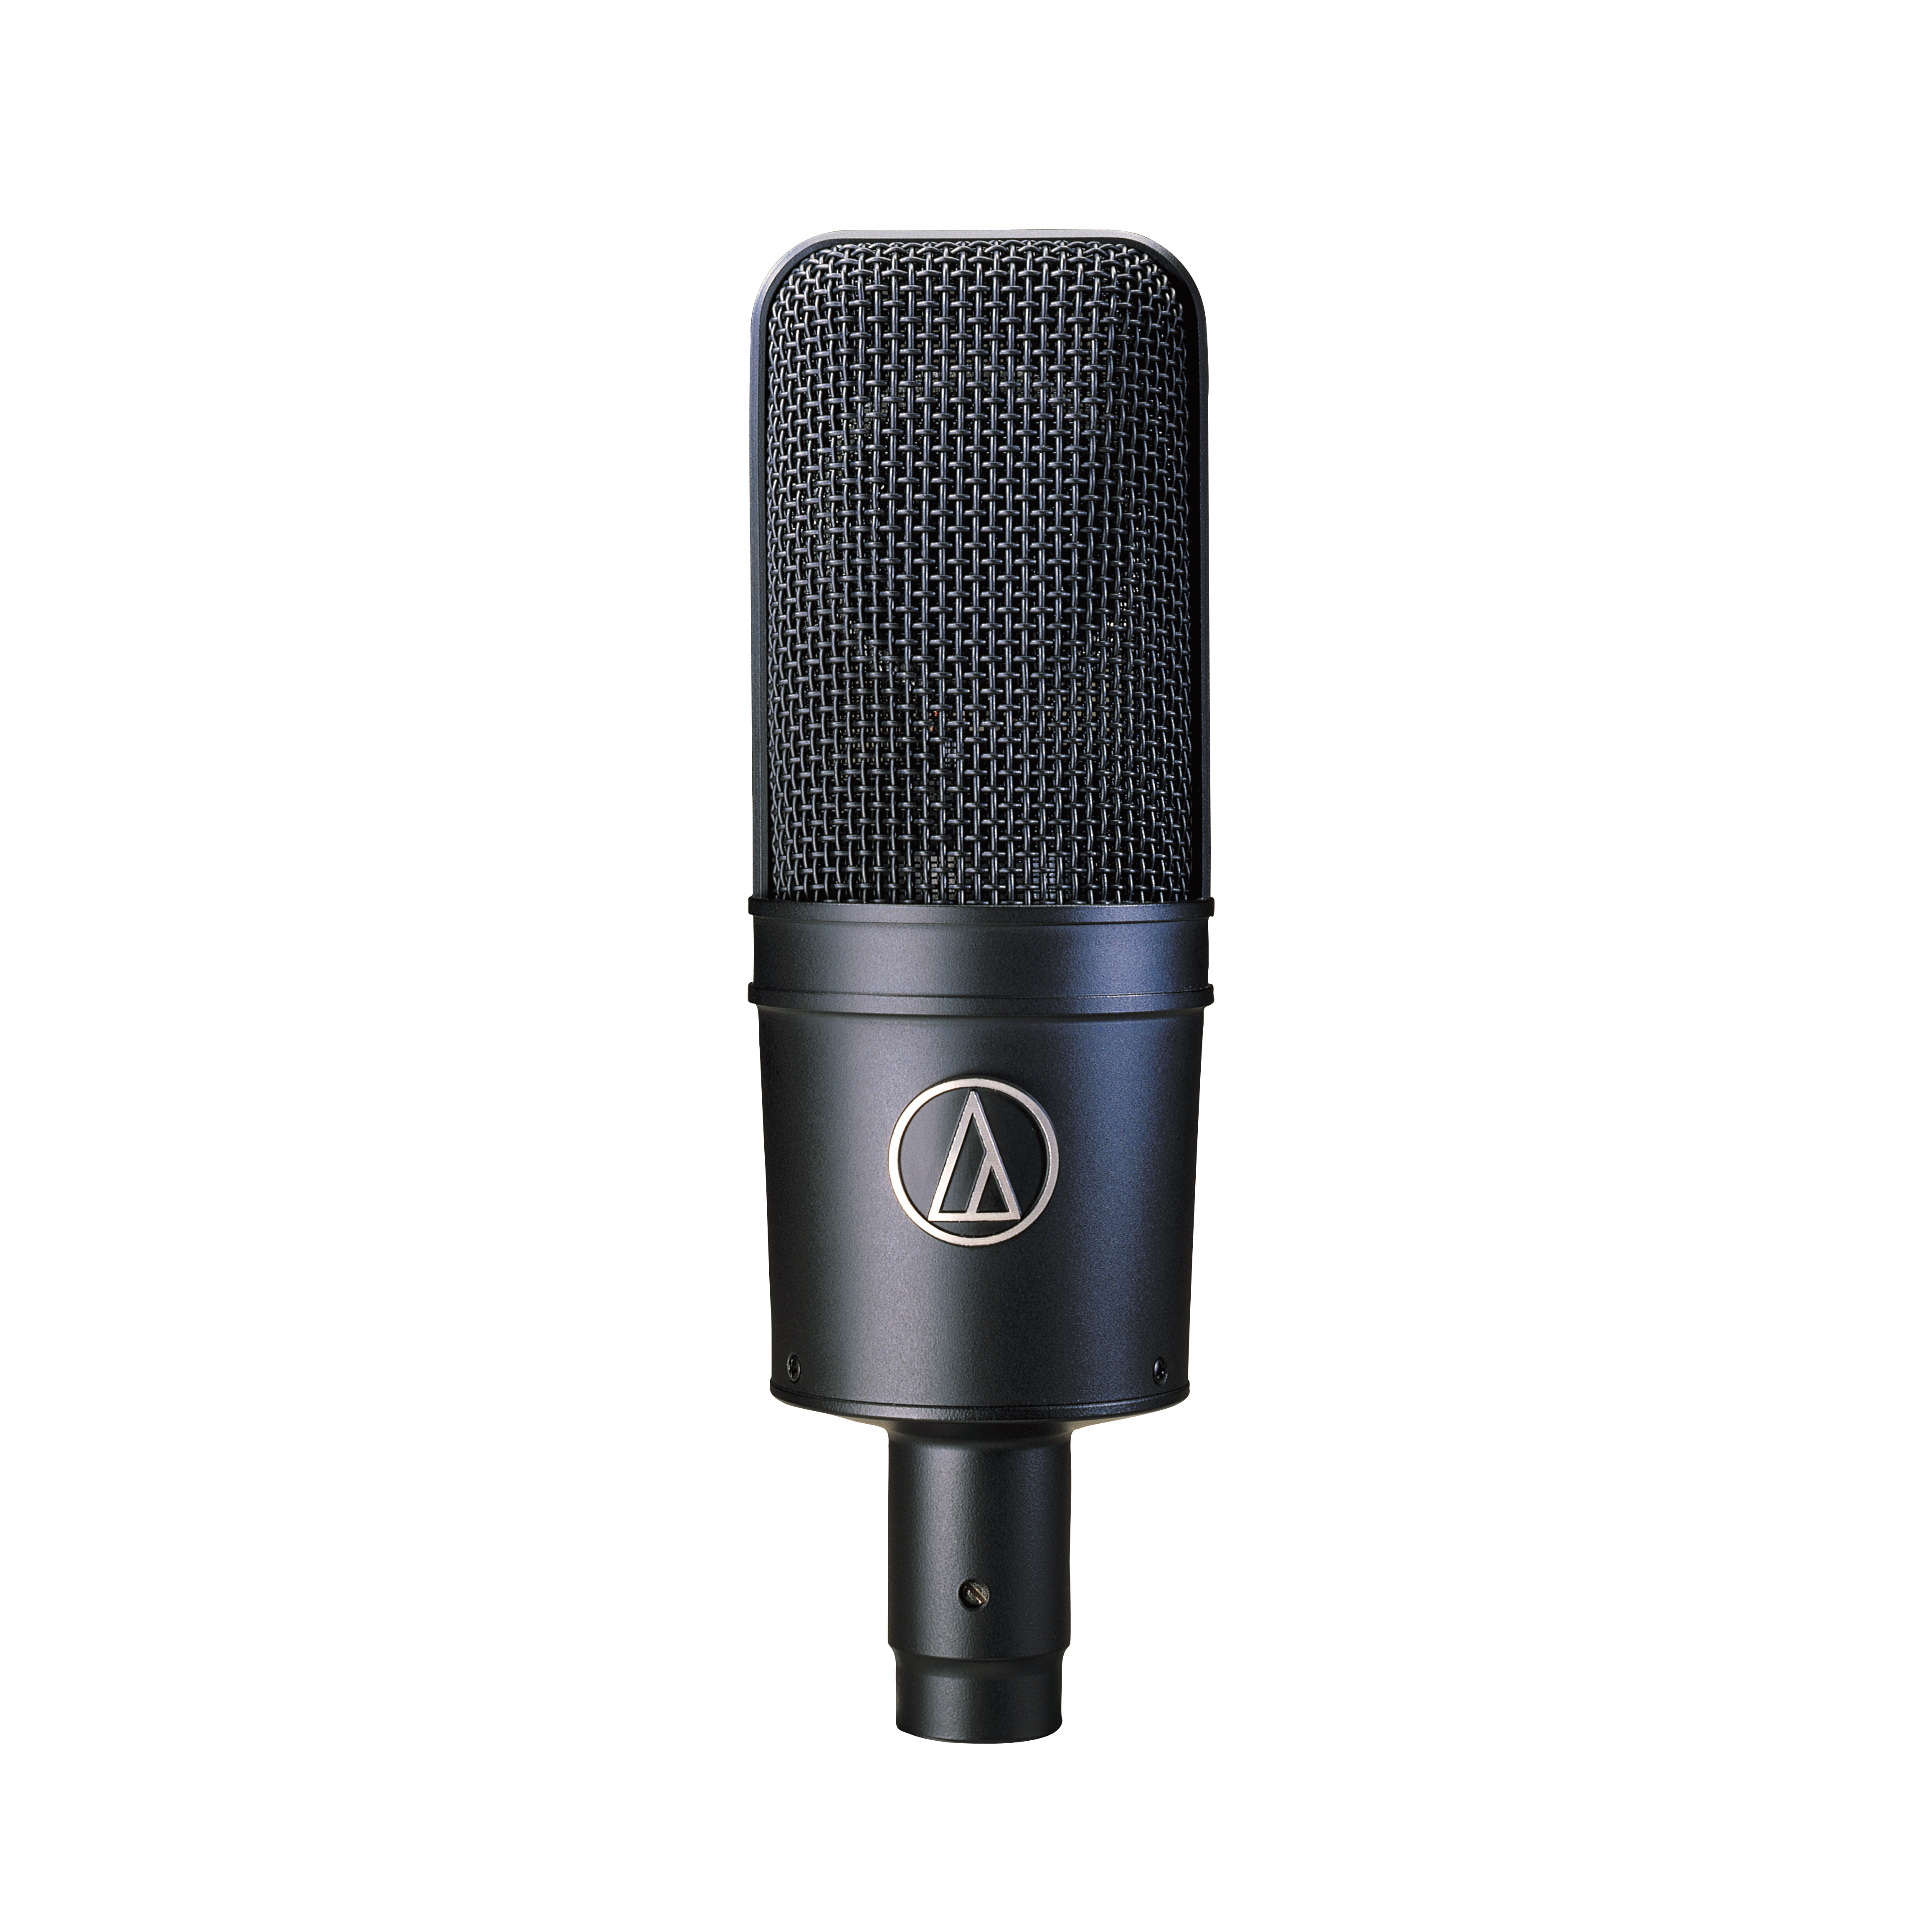 Audio Technica AT 4033/CL